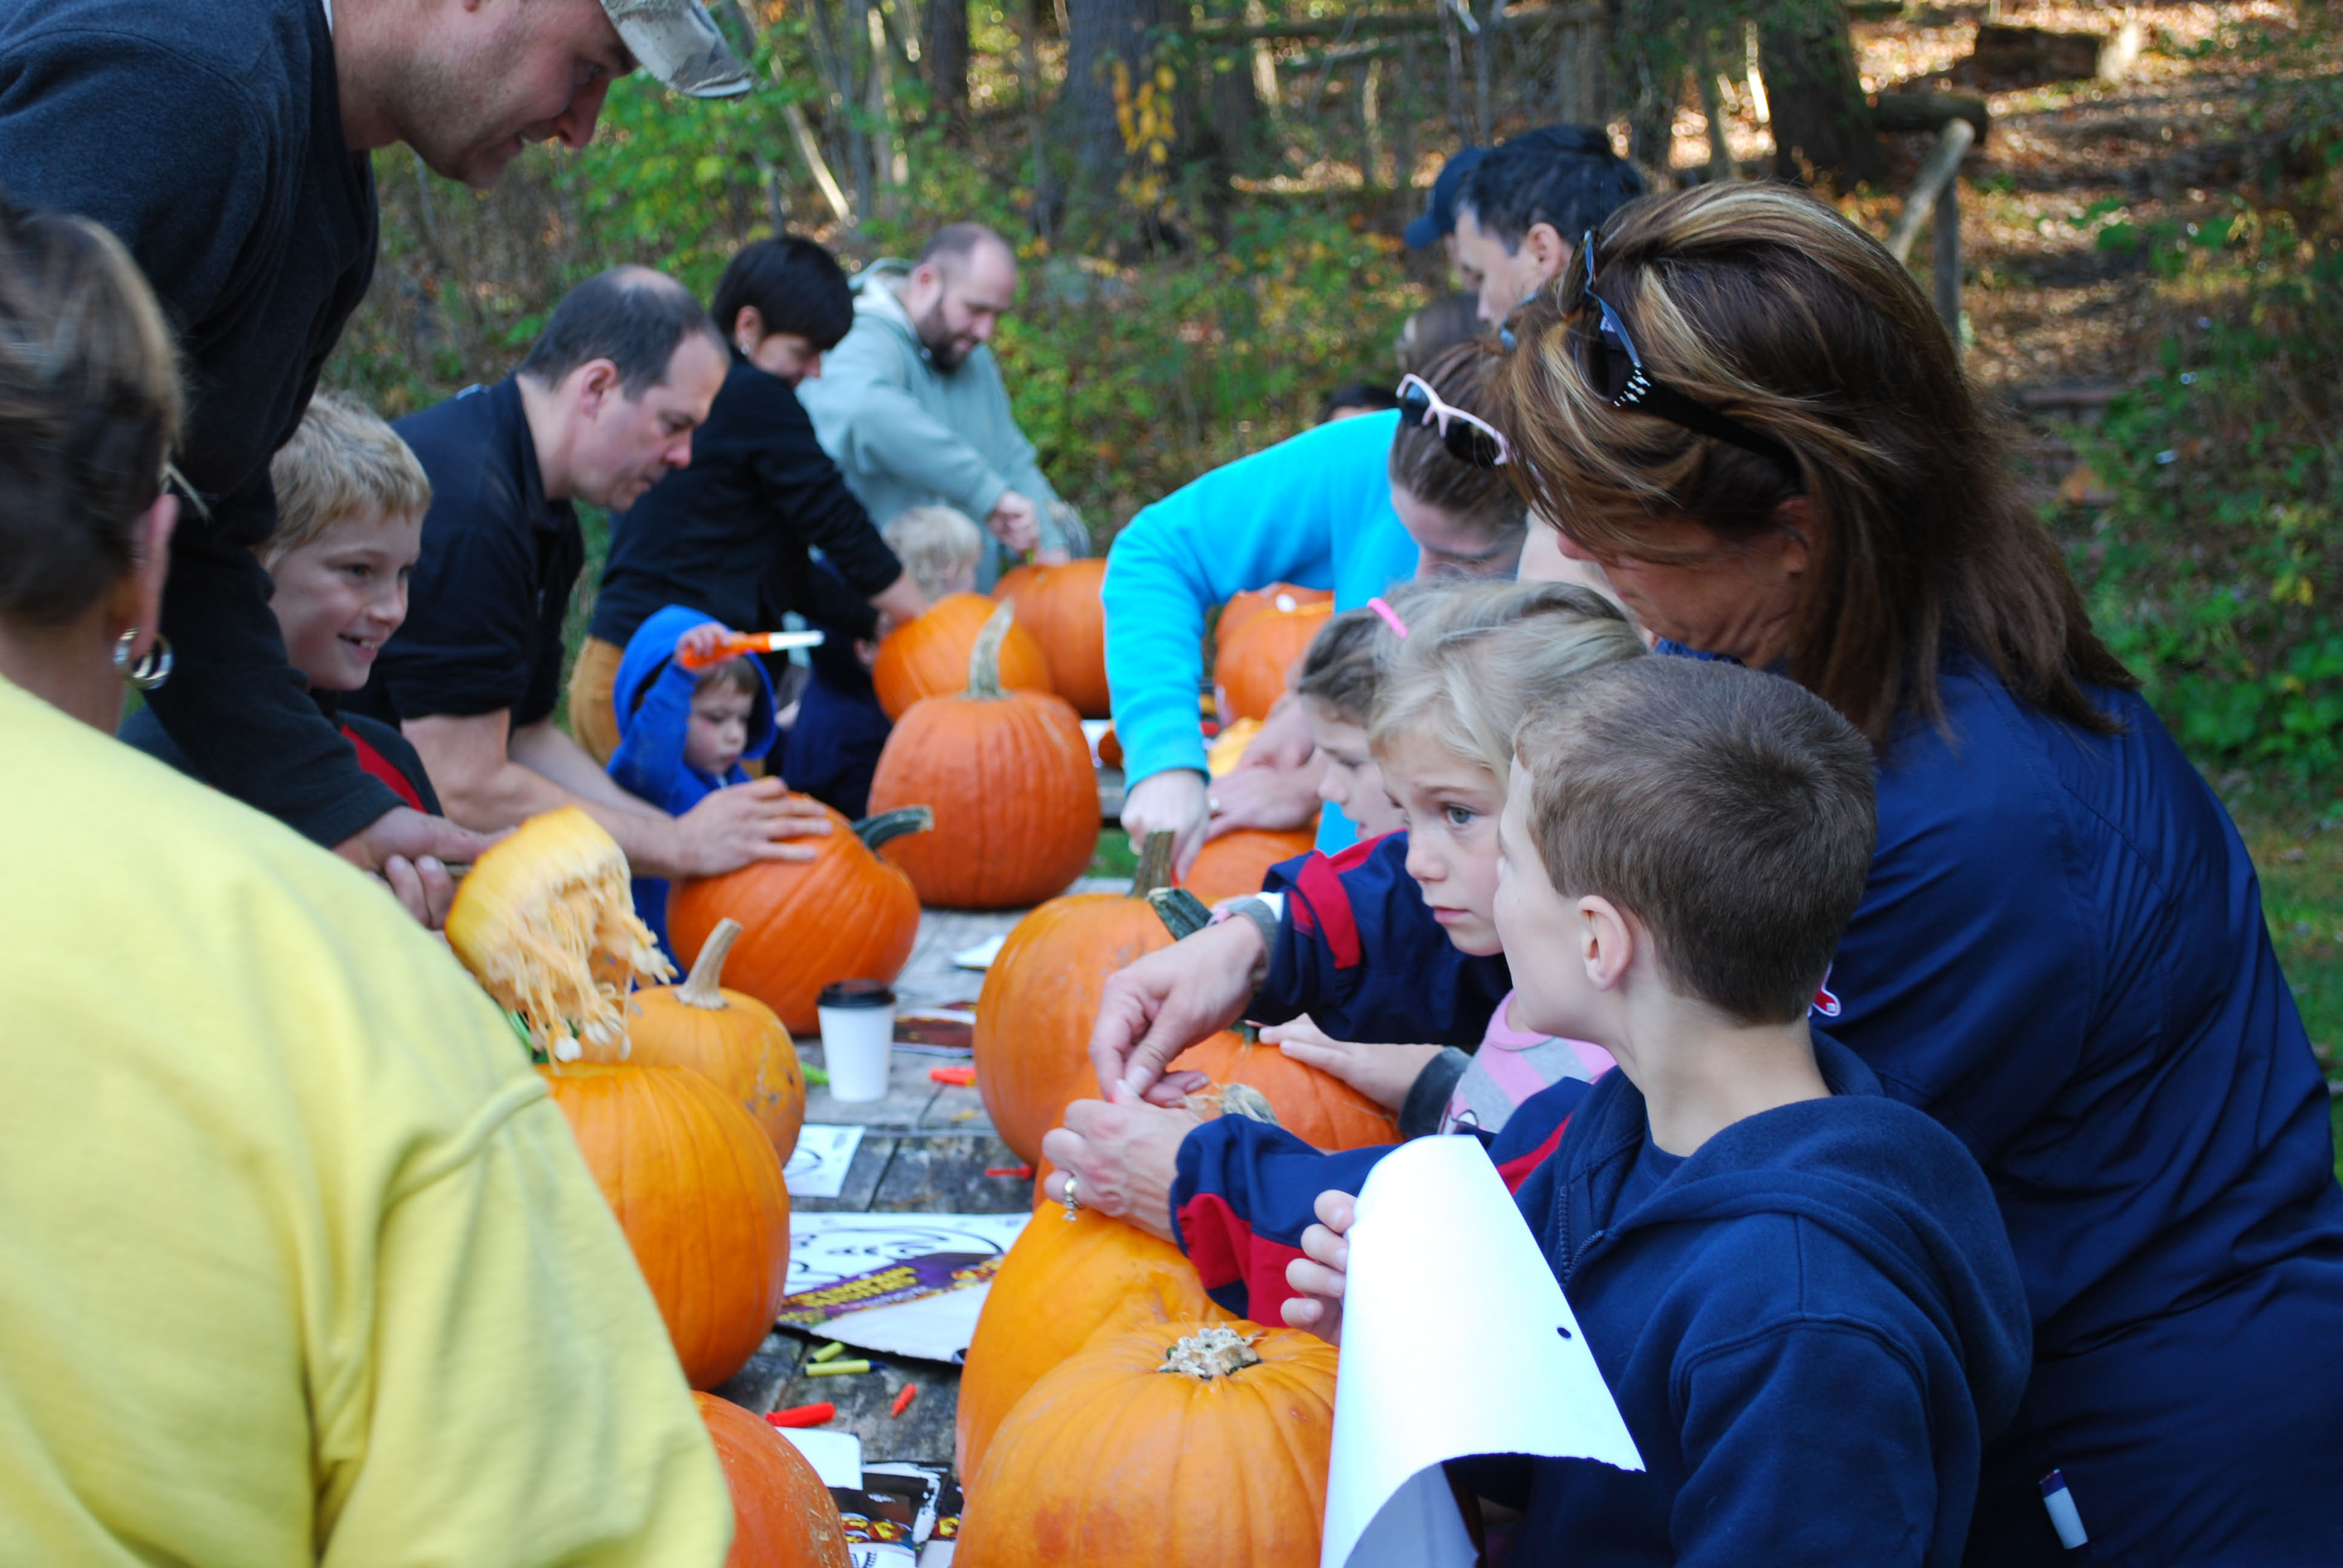 White River Junction Vermont Camping Events | Quechee ...